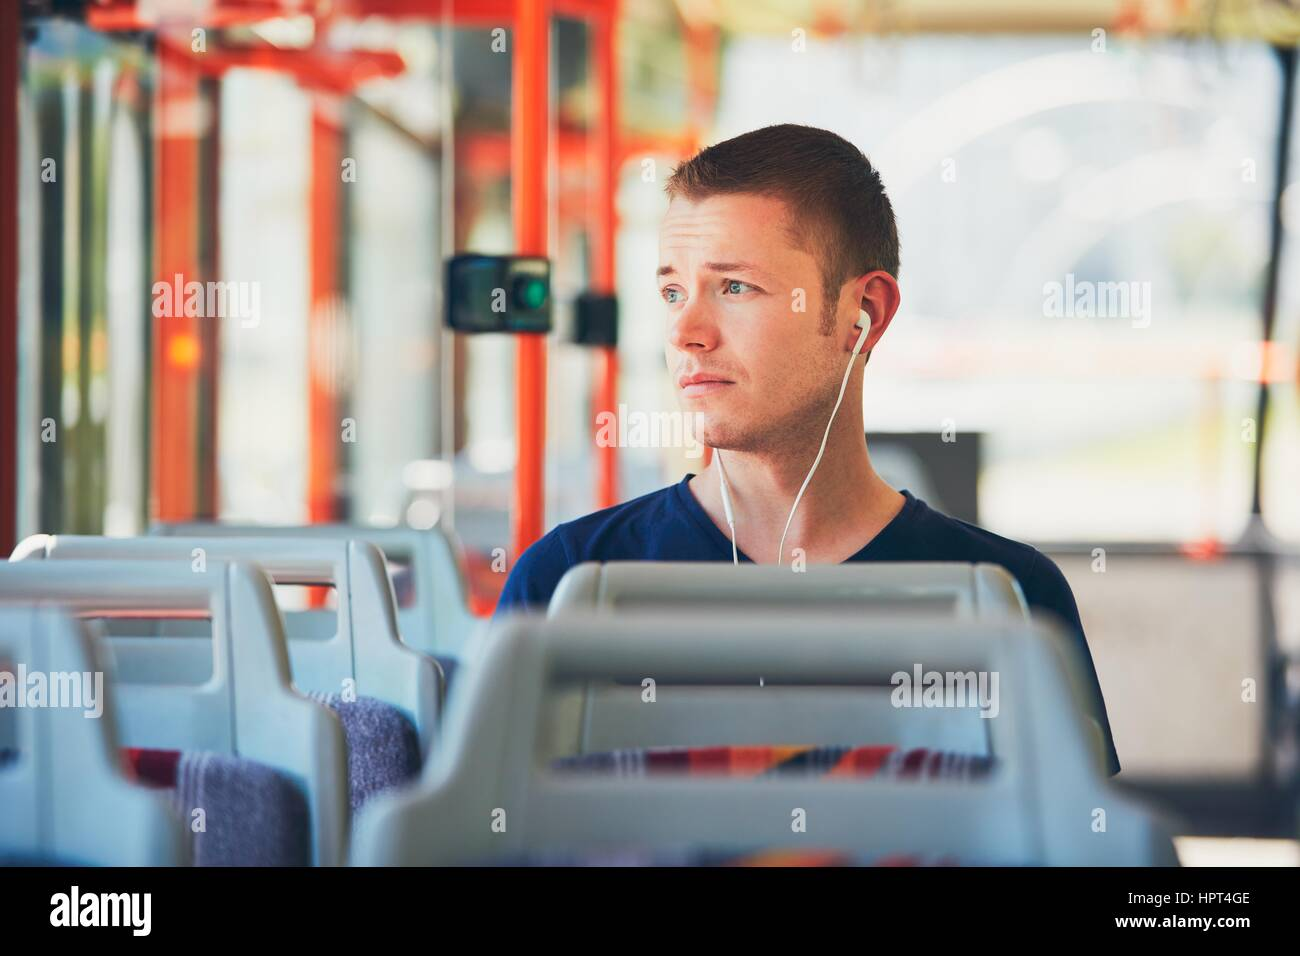 Sad young man is traveling by tram (bus). Everyday life and commuting to work by public transportation. Man is wearing - Stock Image